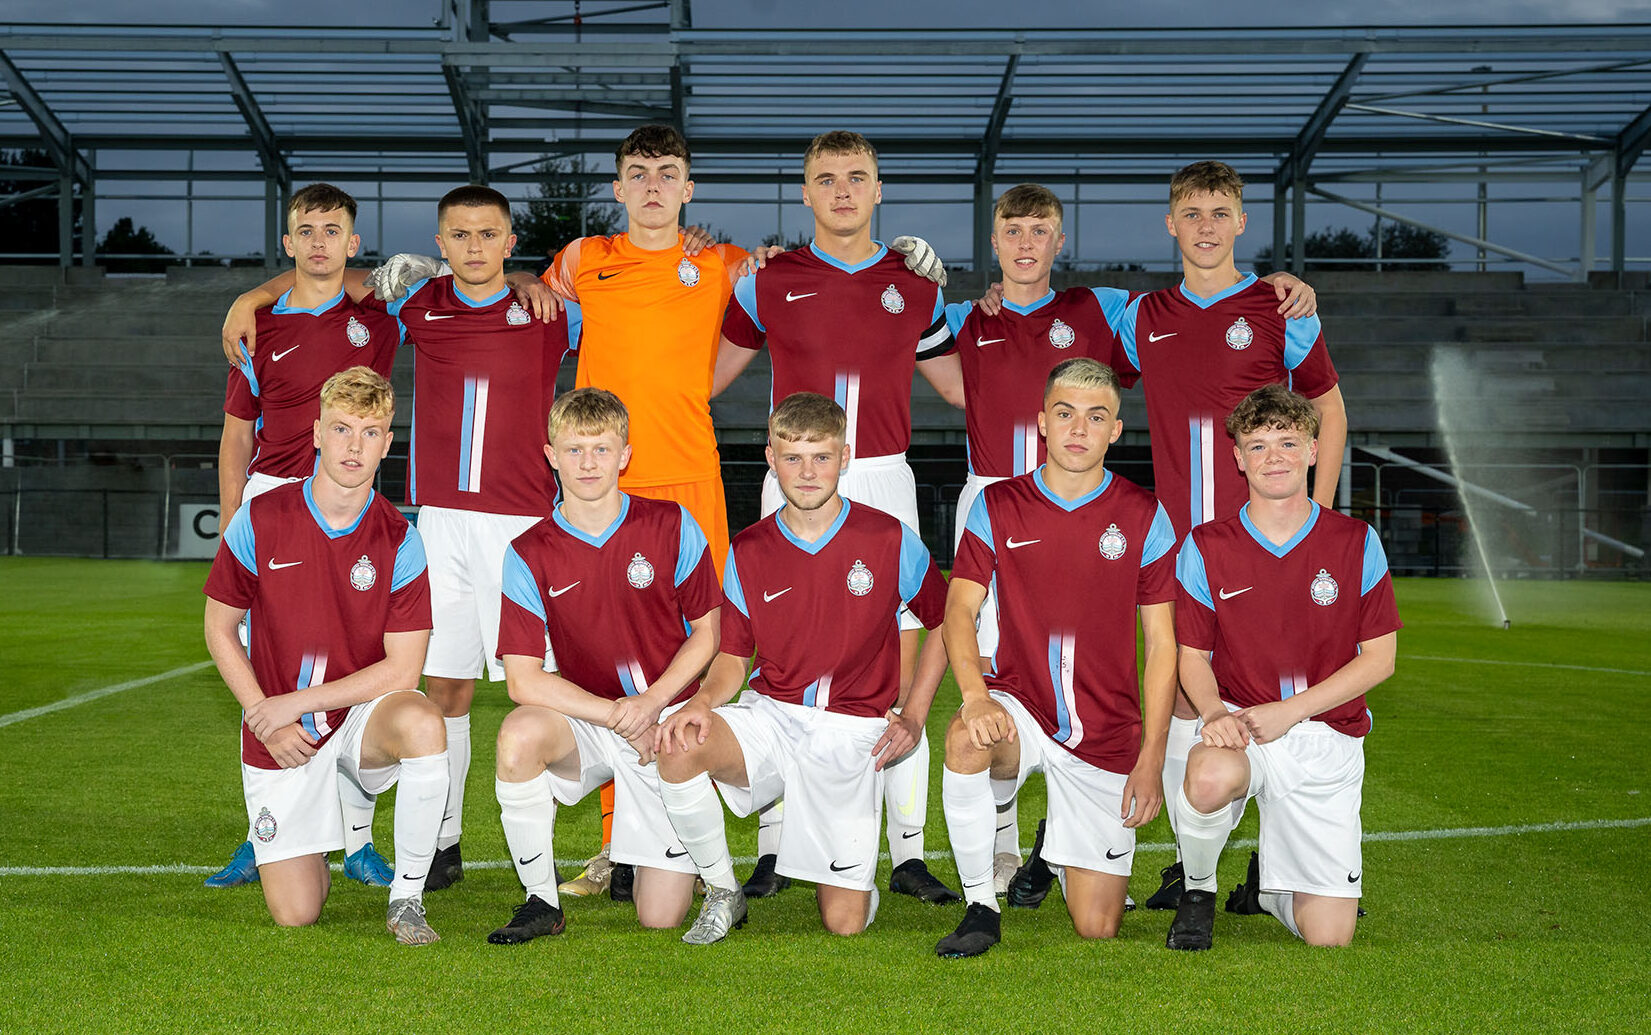 Date set for Stockton tie in FA Youth Cup